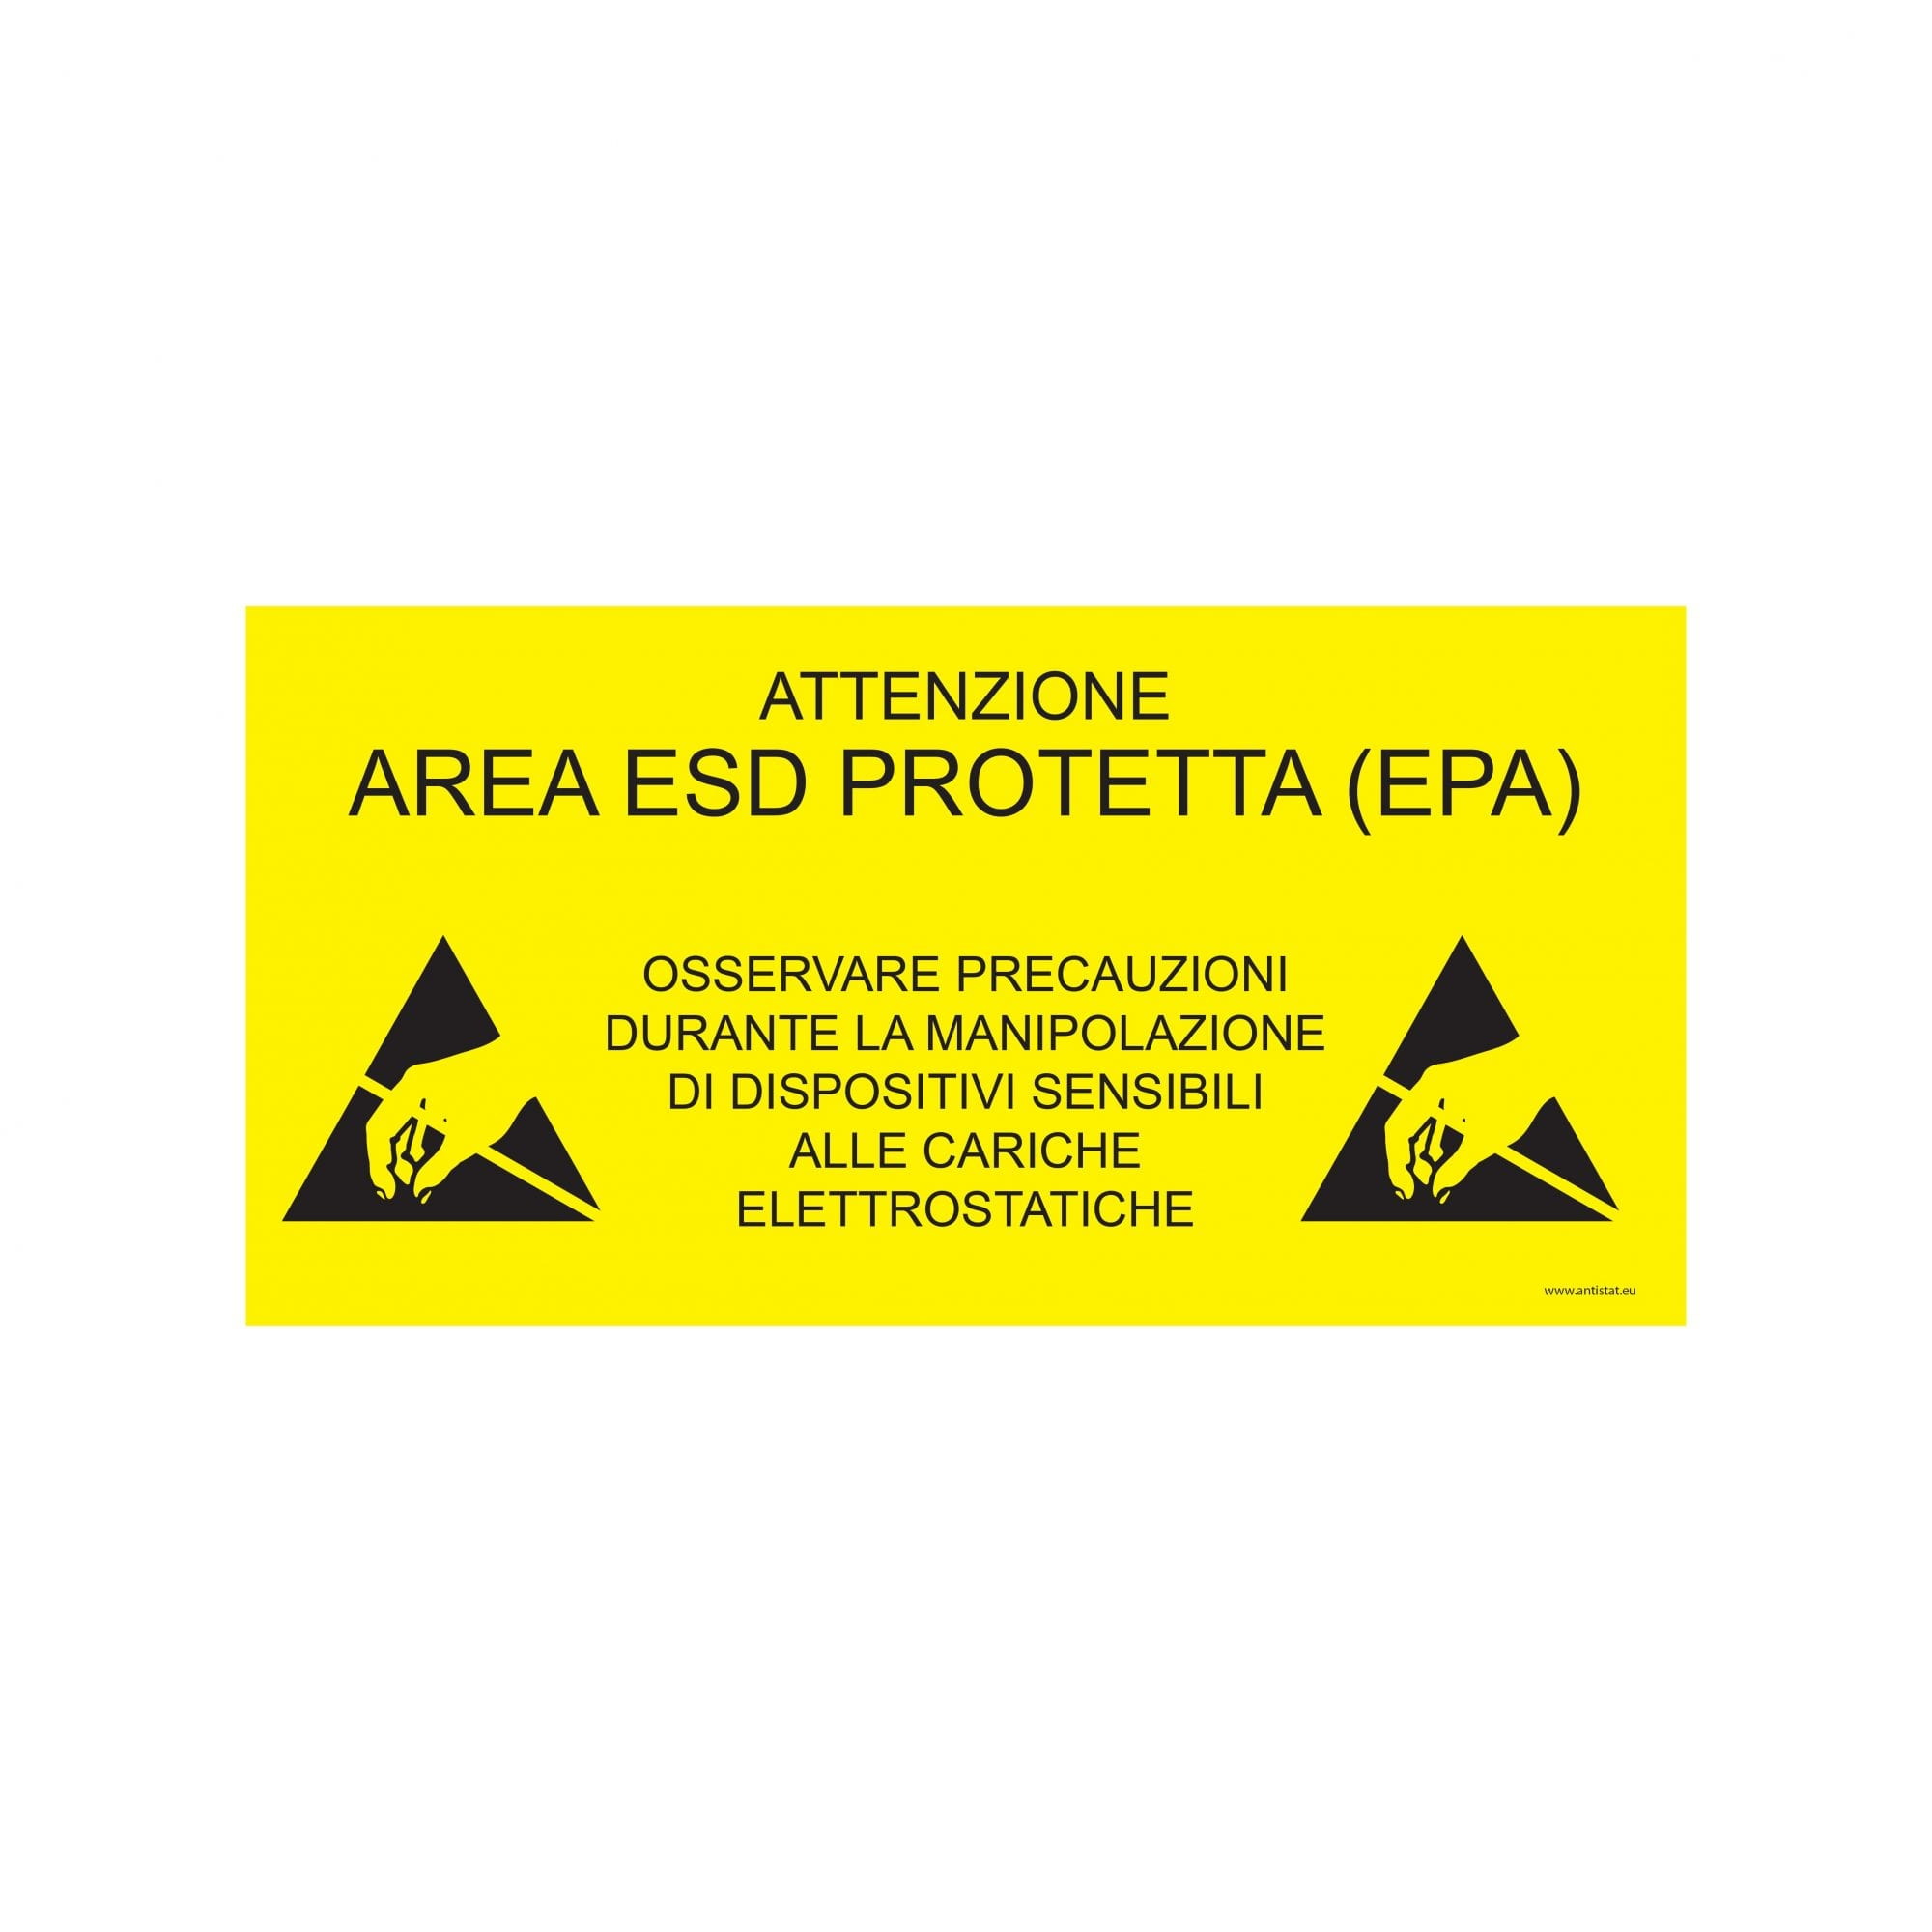 ESD Protected Area Sign_305x105_yellow background_ITALIAN